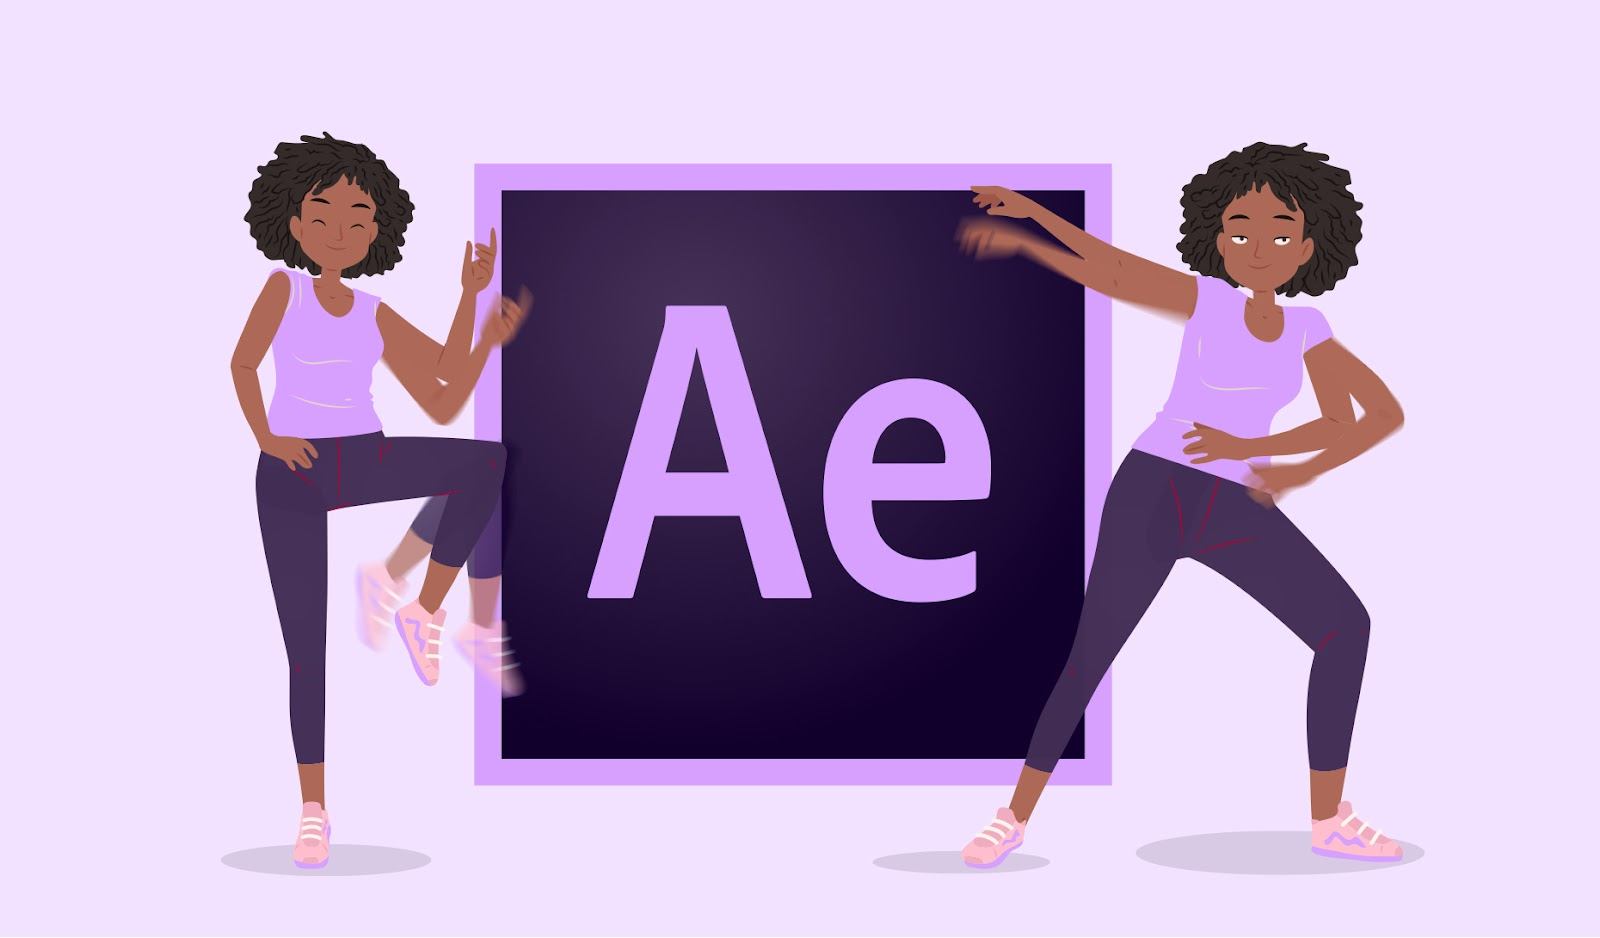 Illustration showing a character animating next to the Adobe After Effects logo